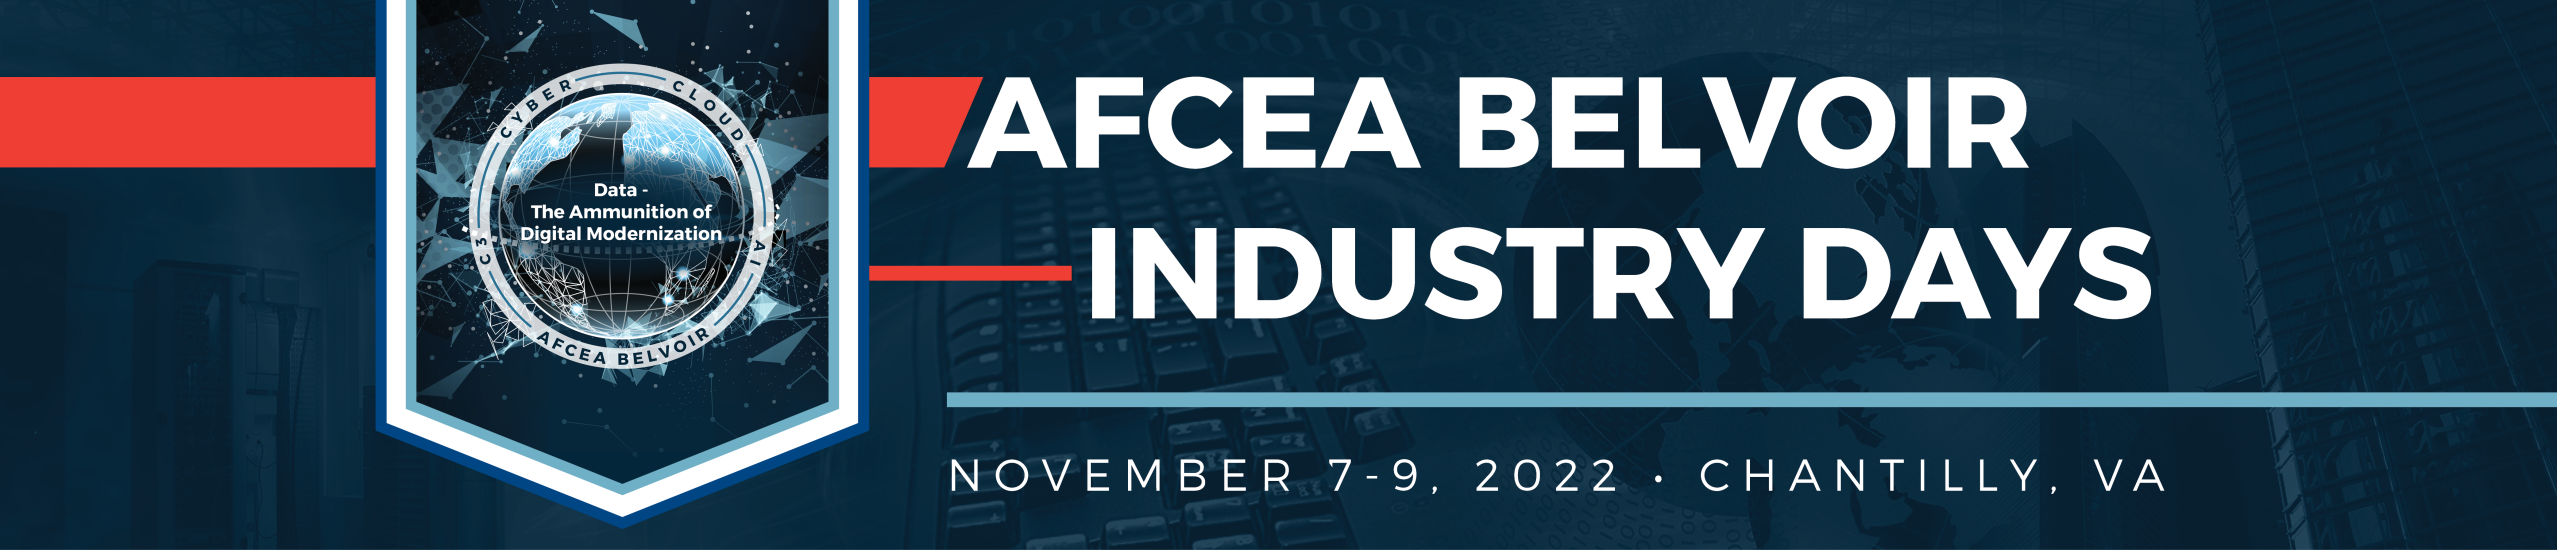 AFCEA Belvoir Industry Days 2020